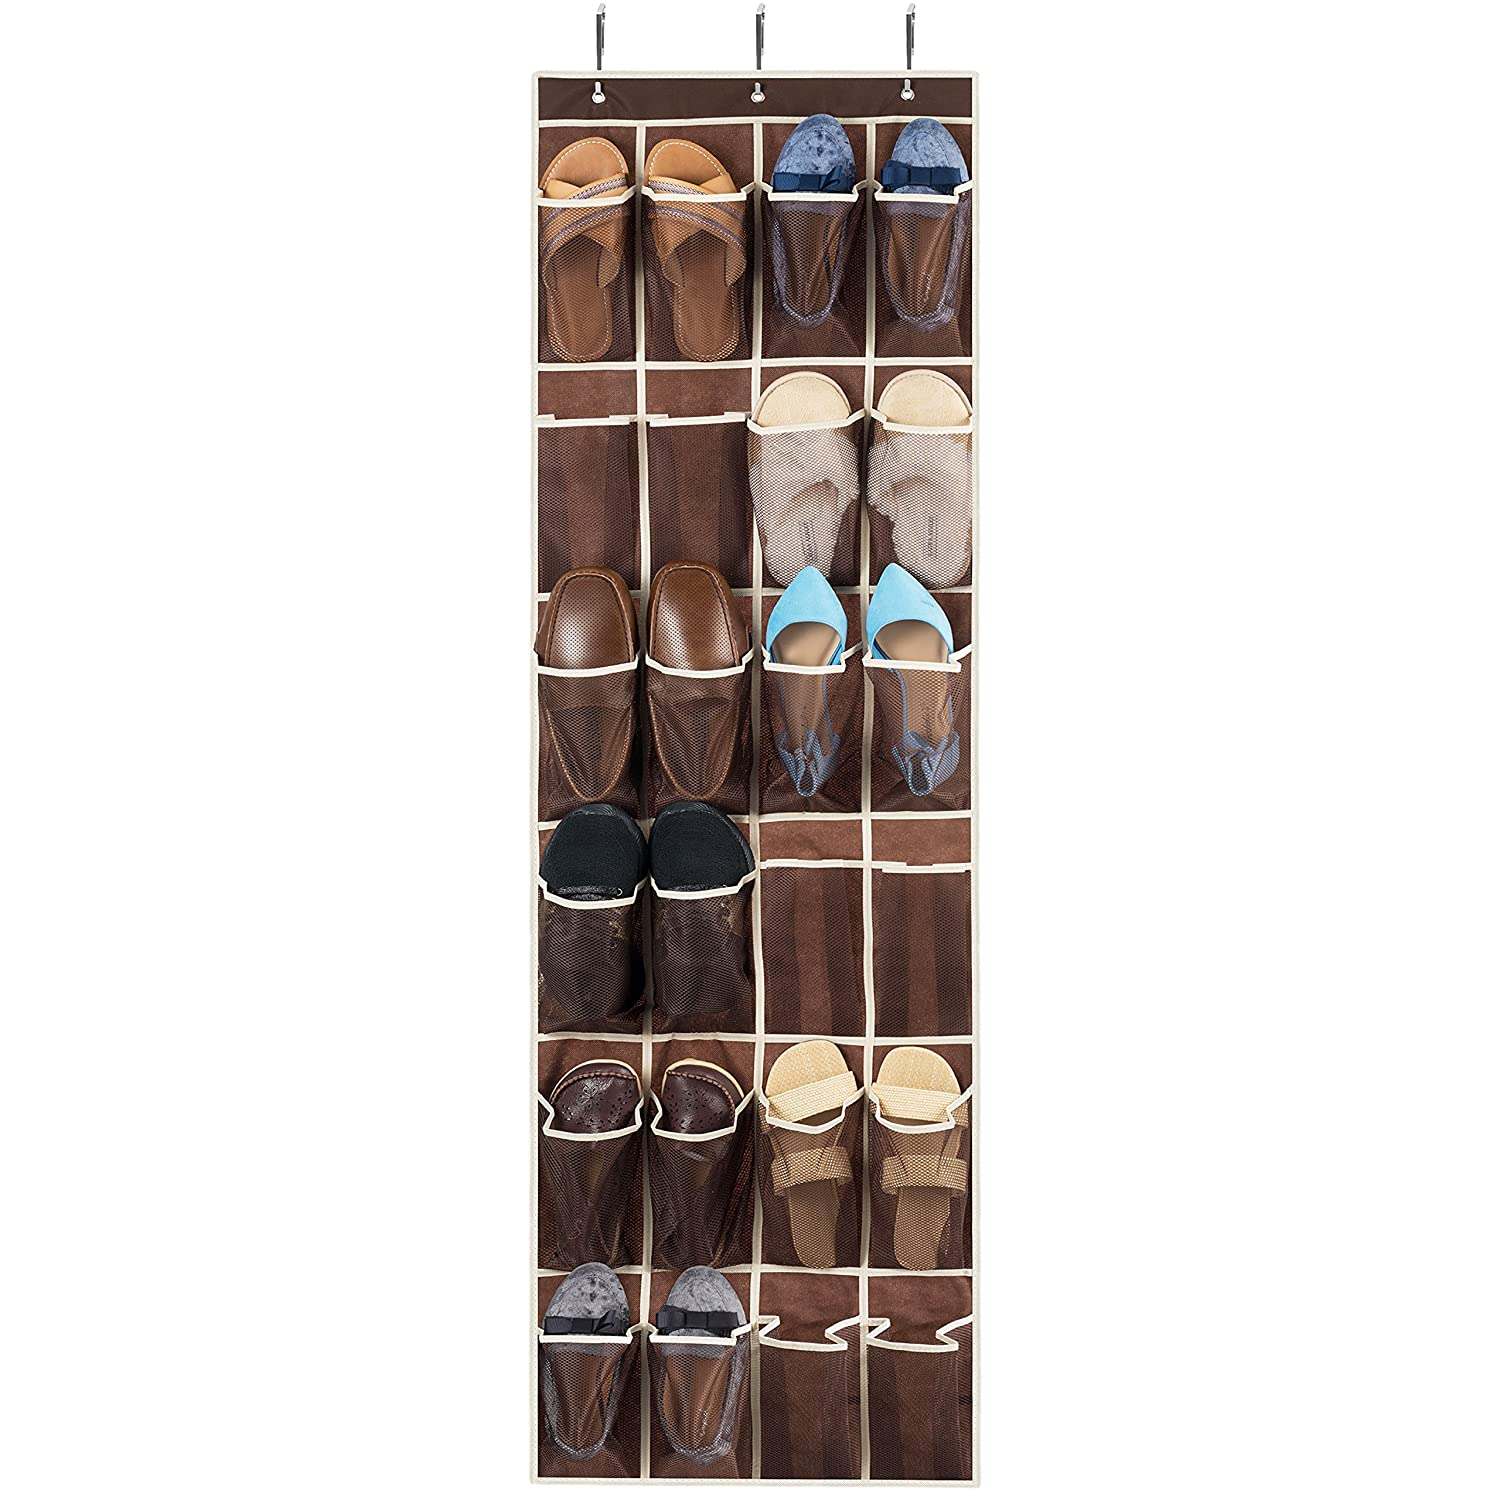 ZOBER Over The Door Shoe Organizer - 24 Breathable Pockets, Hanging Shoe Holder for Maximizing Shoe Storage, Accessories, Toiletries, Laundry Items. 64in x 18in FBA_B01AS4ZII6